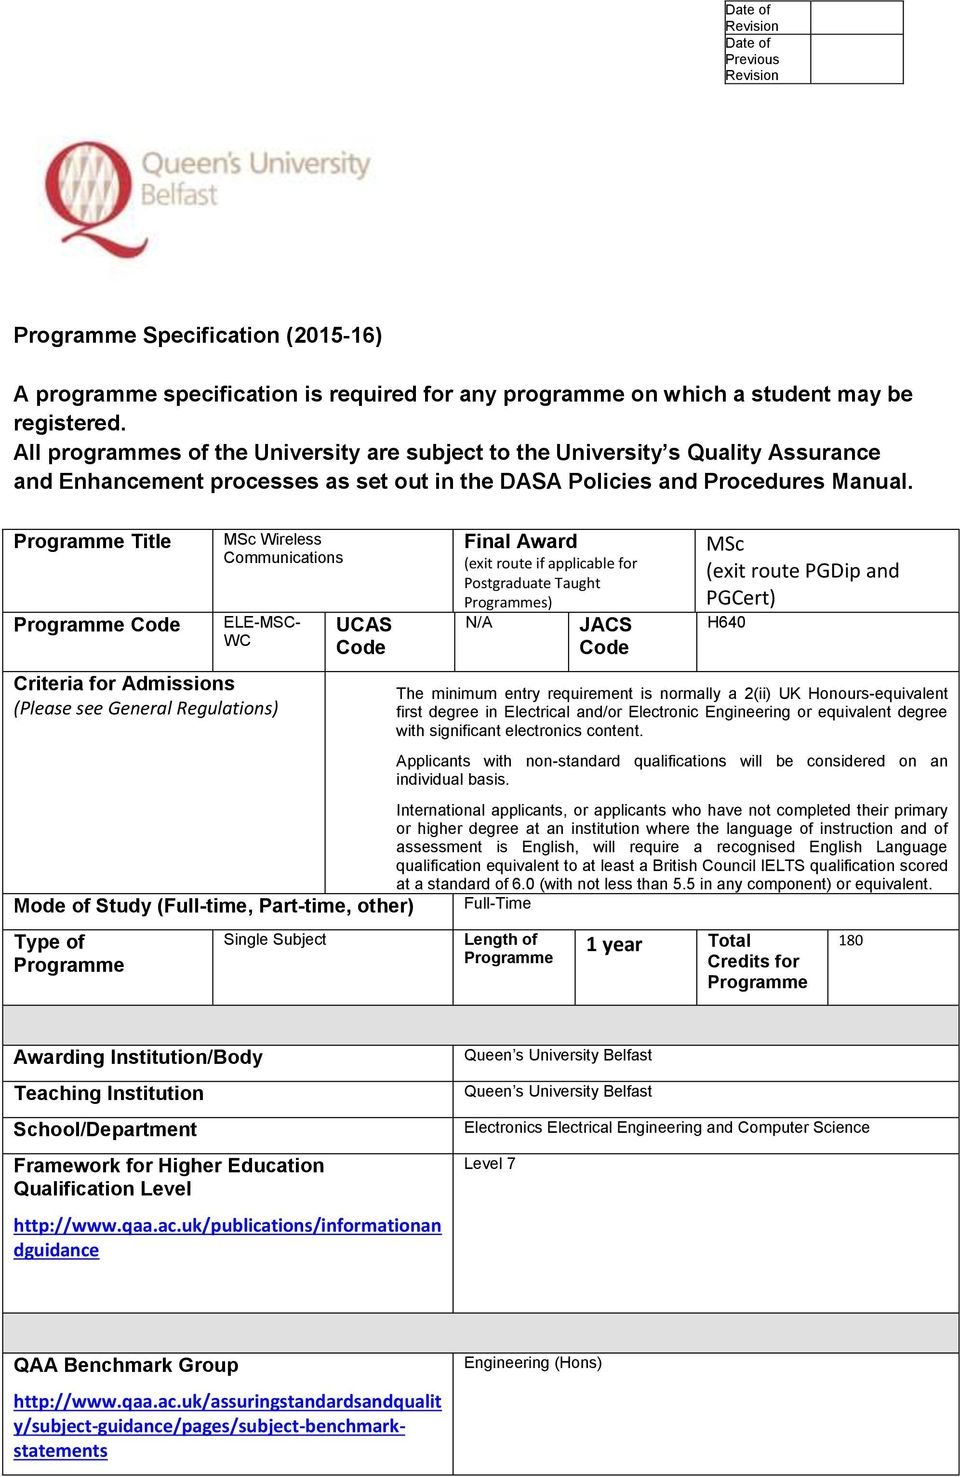 Programme Title Programme Code MSc Wireless Communications ELE-MSC- WC Criteria for Admissions (Please see General Regulations) UCAS Code Final Award (exit route if applicable for Postgraduate Taught